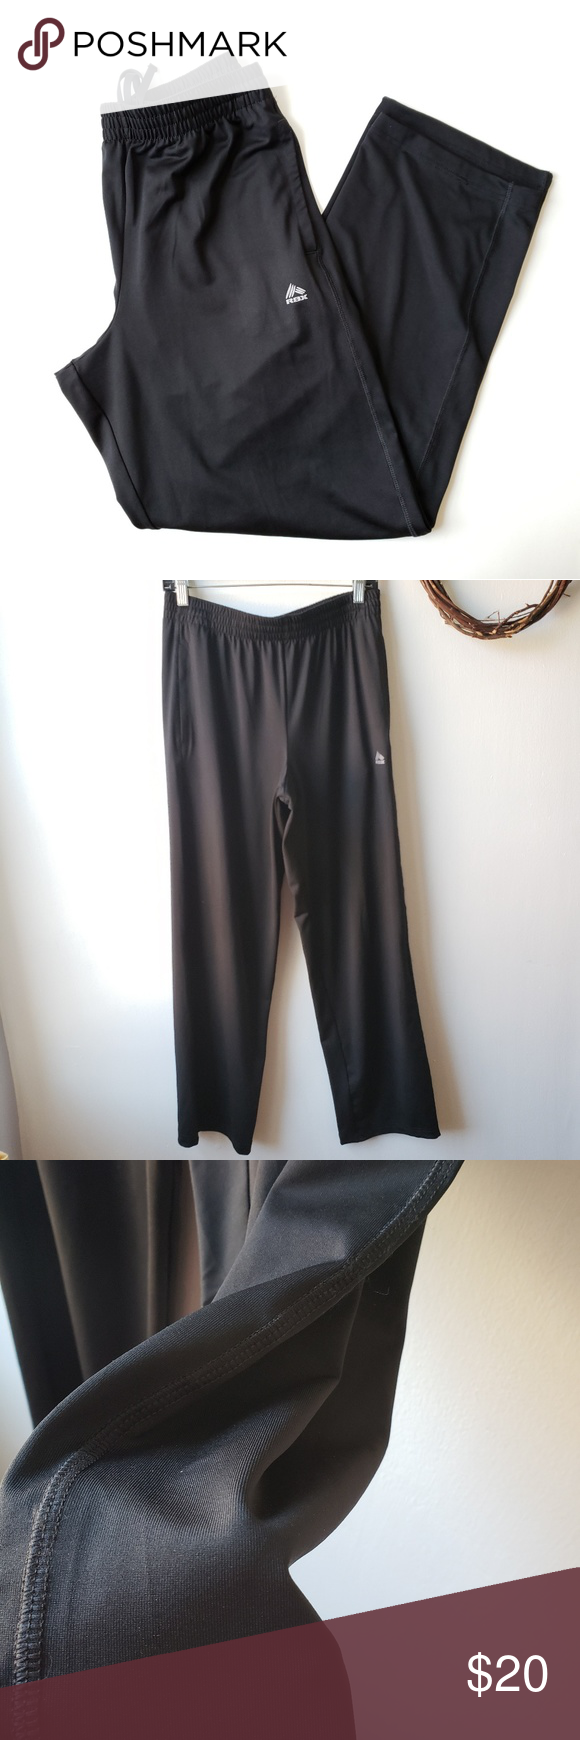 95daf1299ff2 RBX Men s Black Performance Pants Size Medium